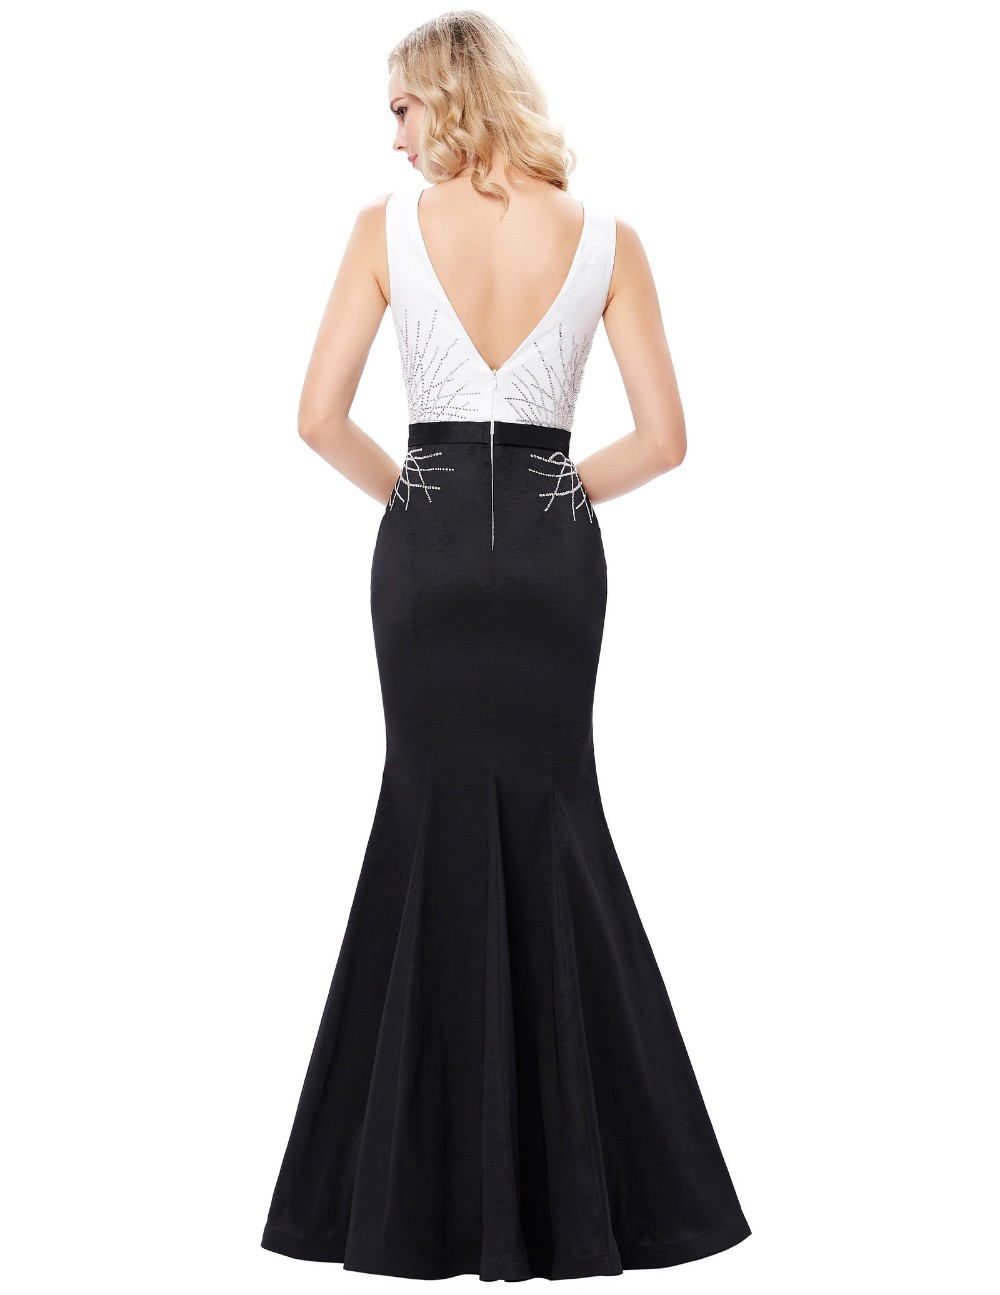 Kate Kasin Sleeveless Boat Neck V-Back Full-Length Black and White Mermaid Prom Dress KK001020-1